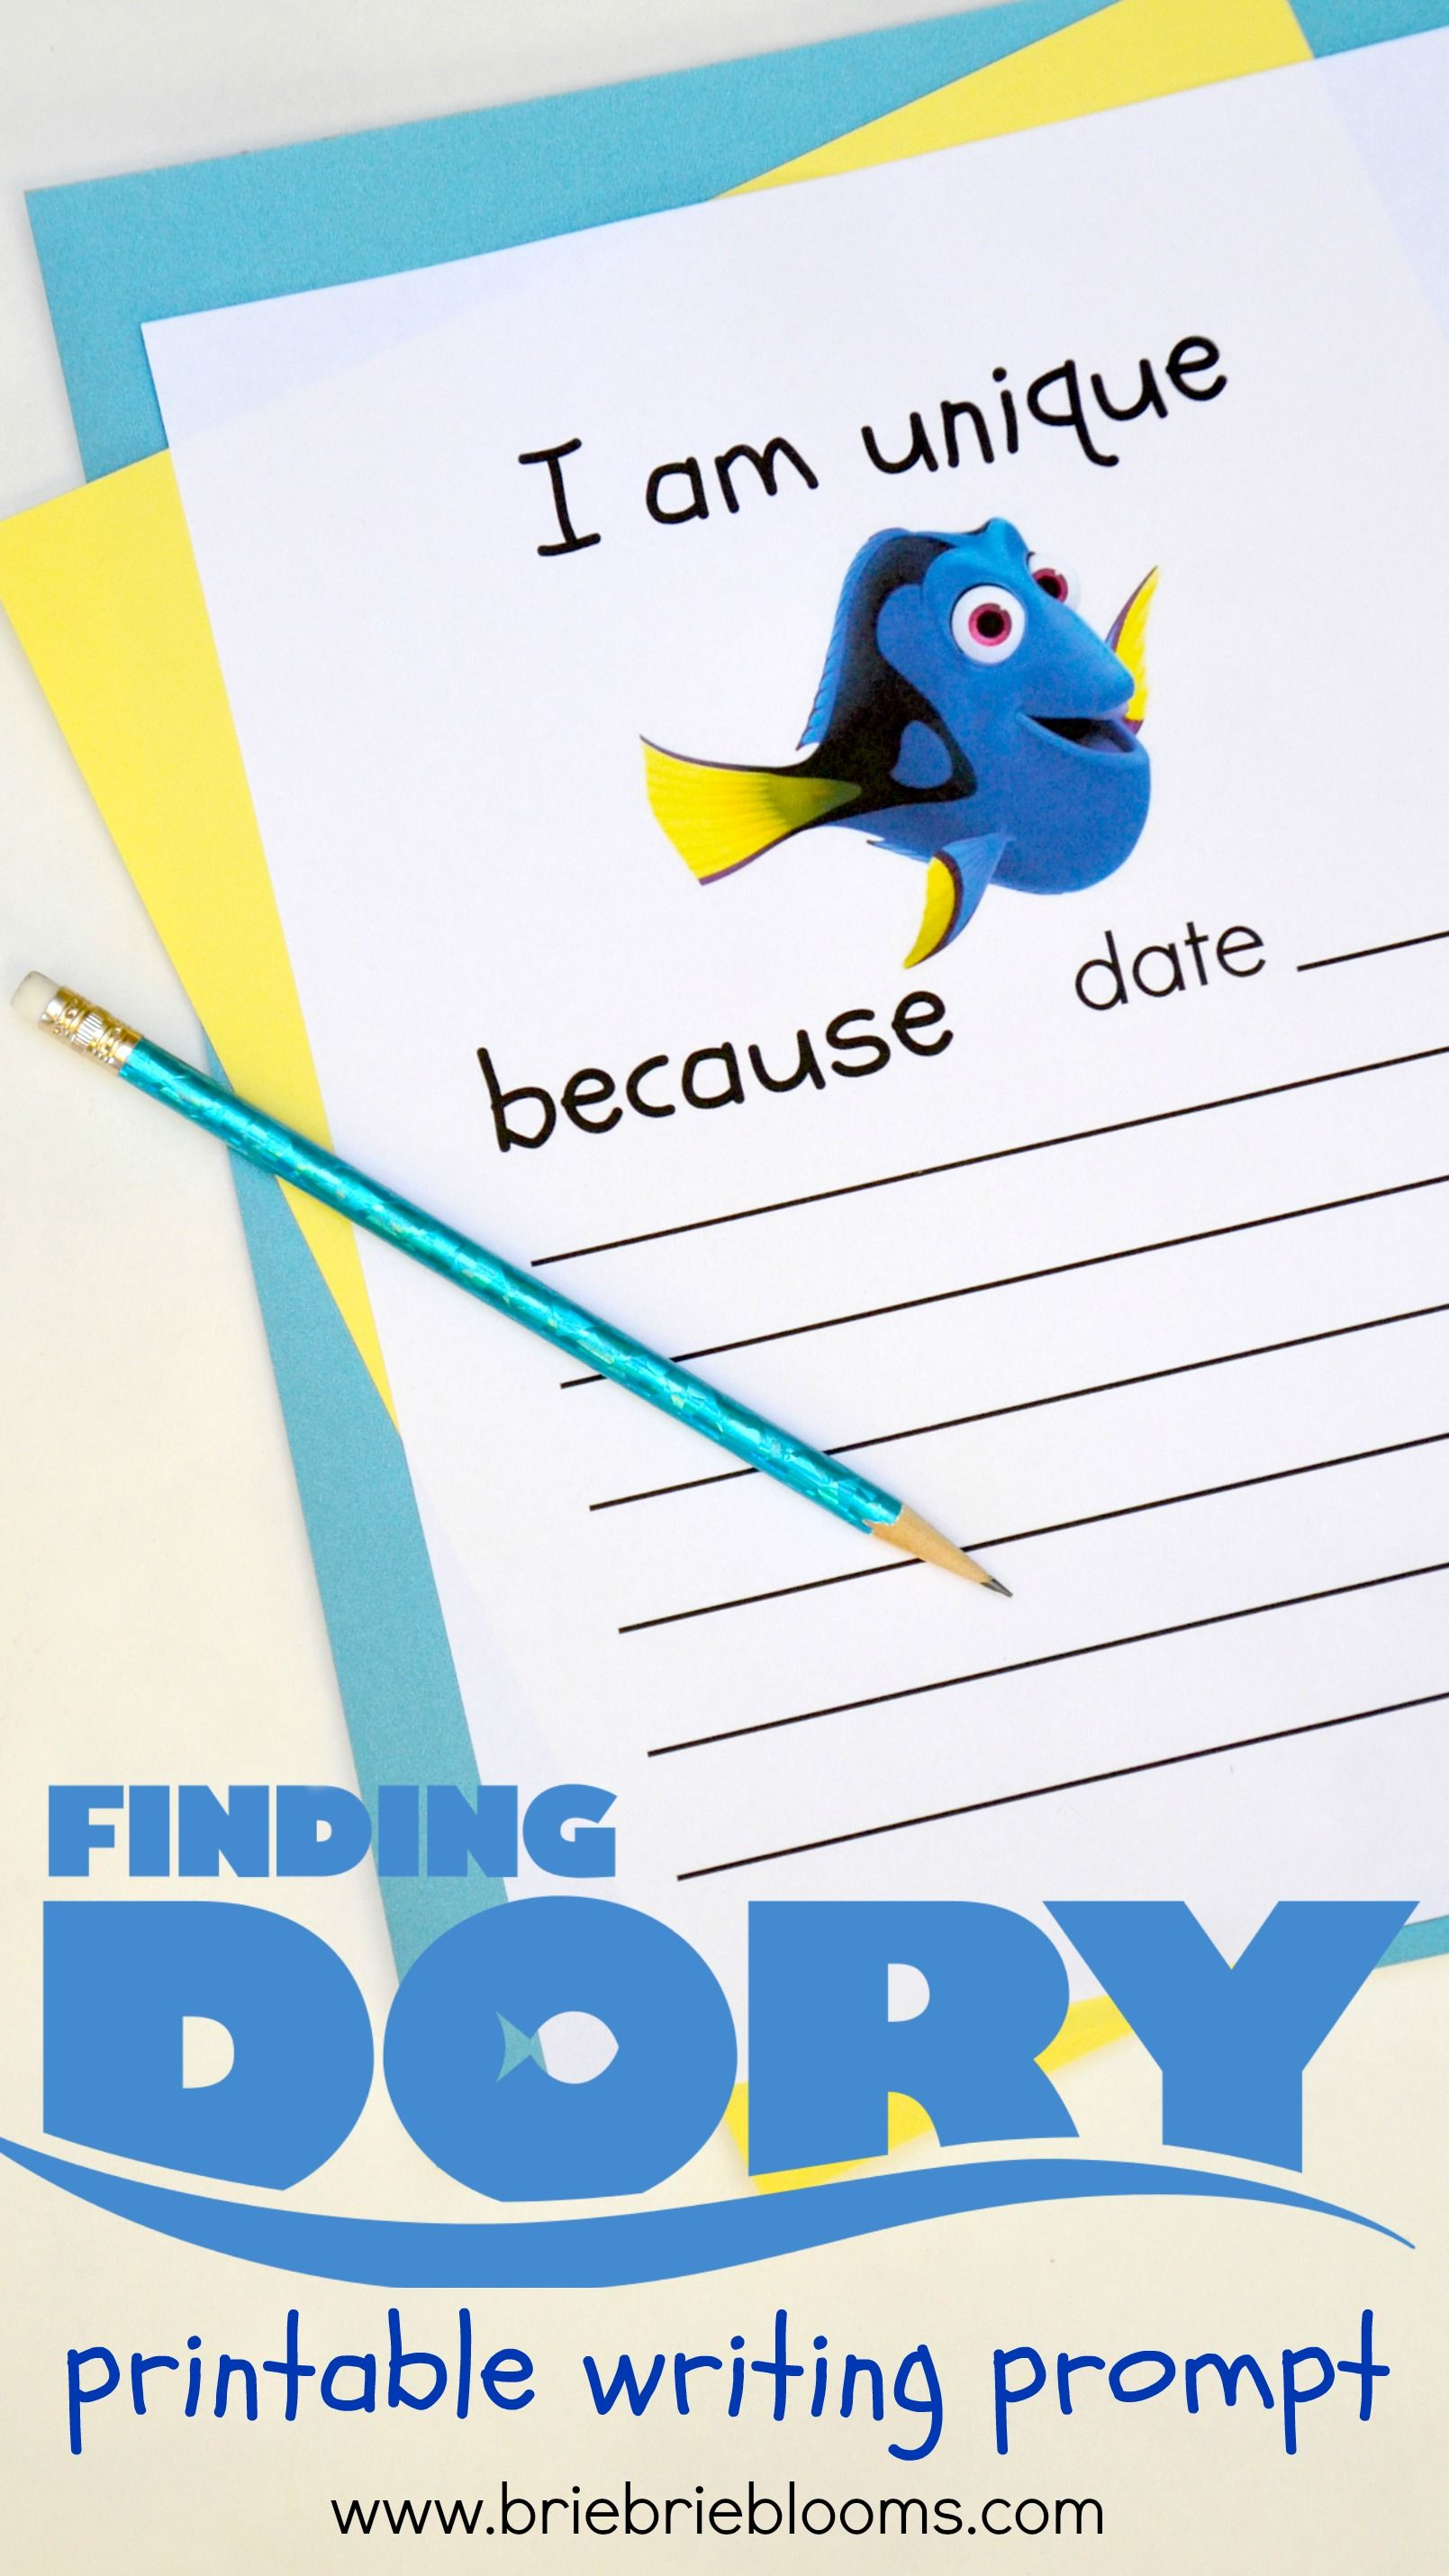 The Free Printable Finding Dory Writing Prompt Is A Great Activity To Help Children Gain